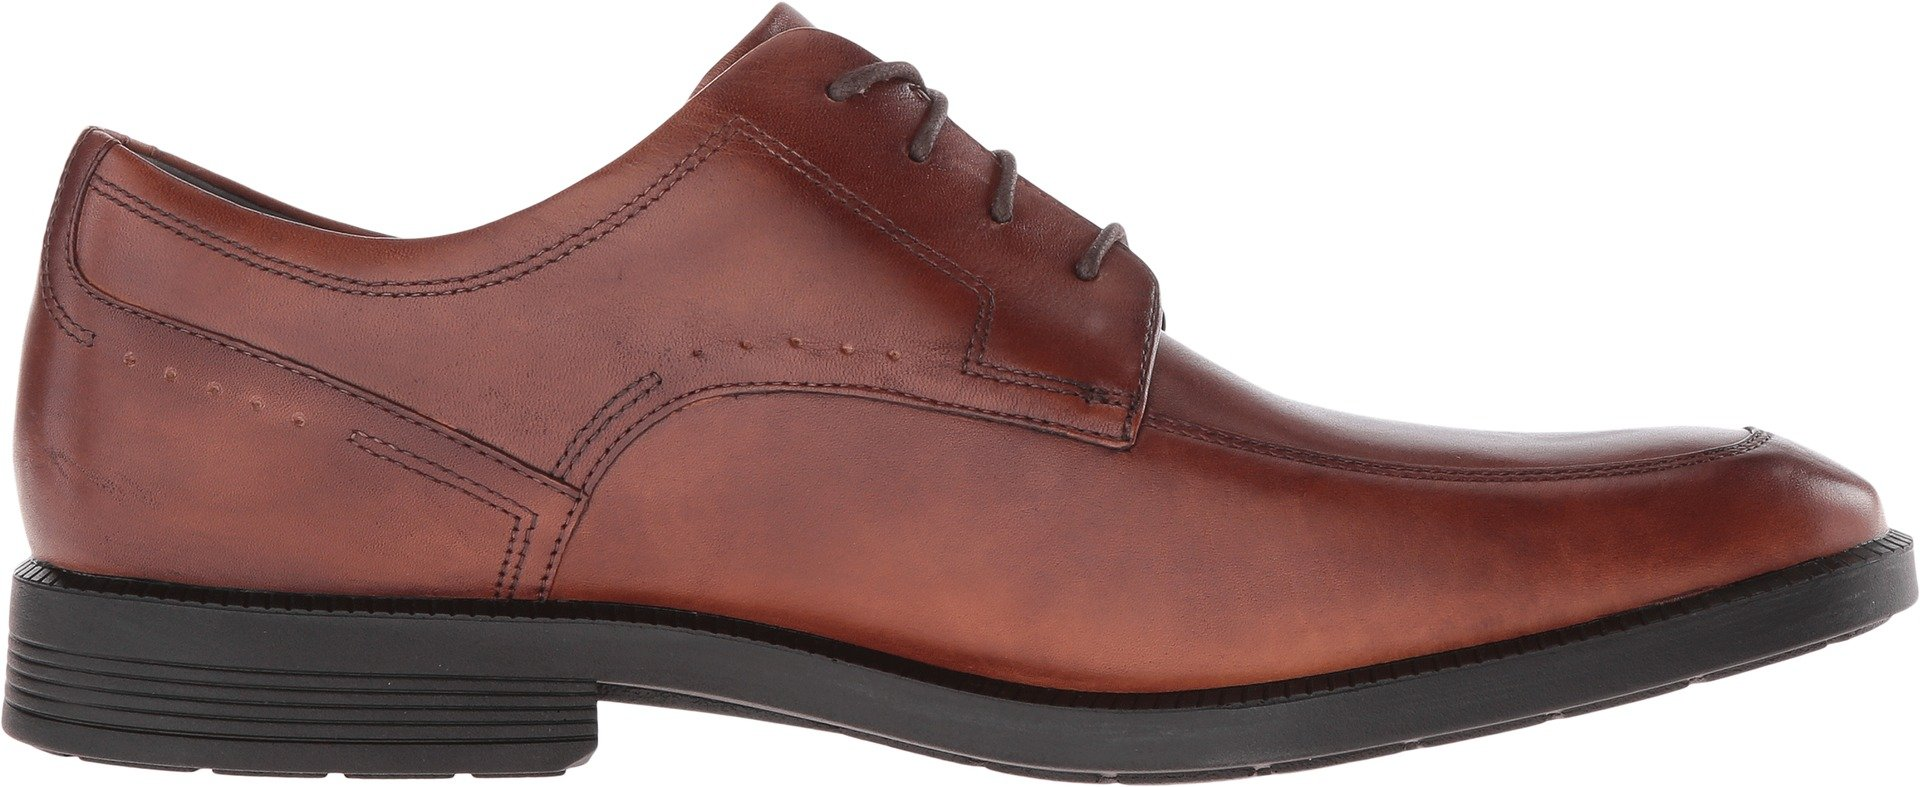 Rockport Men's Dressports Business Apron Toe Oxford New Brown Leather 11.5 M by Rockport (Image #3)